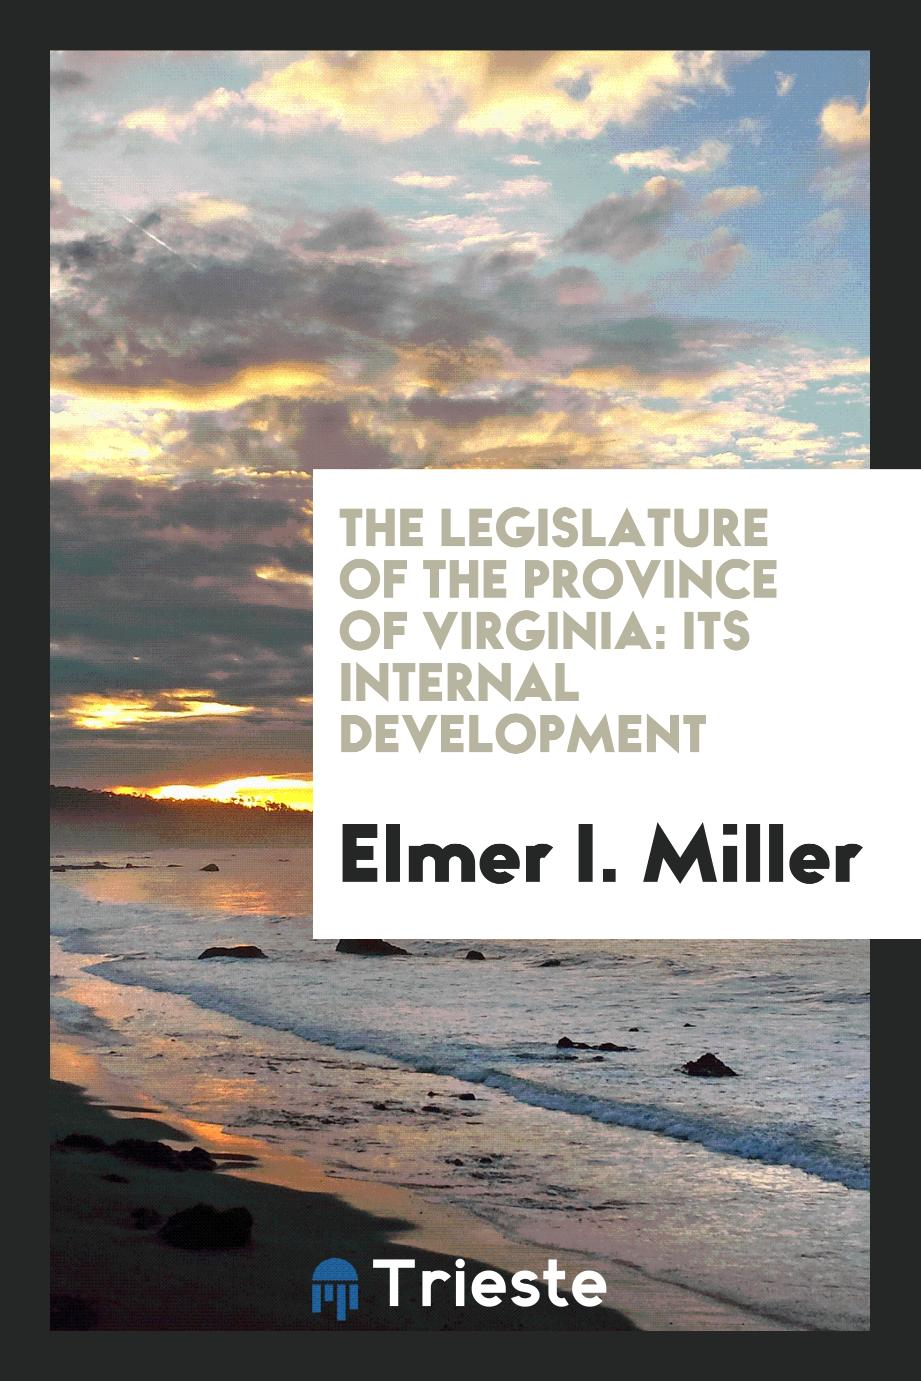 Elmer I. Miller - The Legislature of the Province of Virginia: Its Internal Development